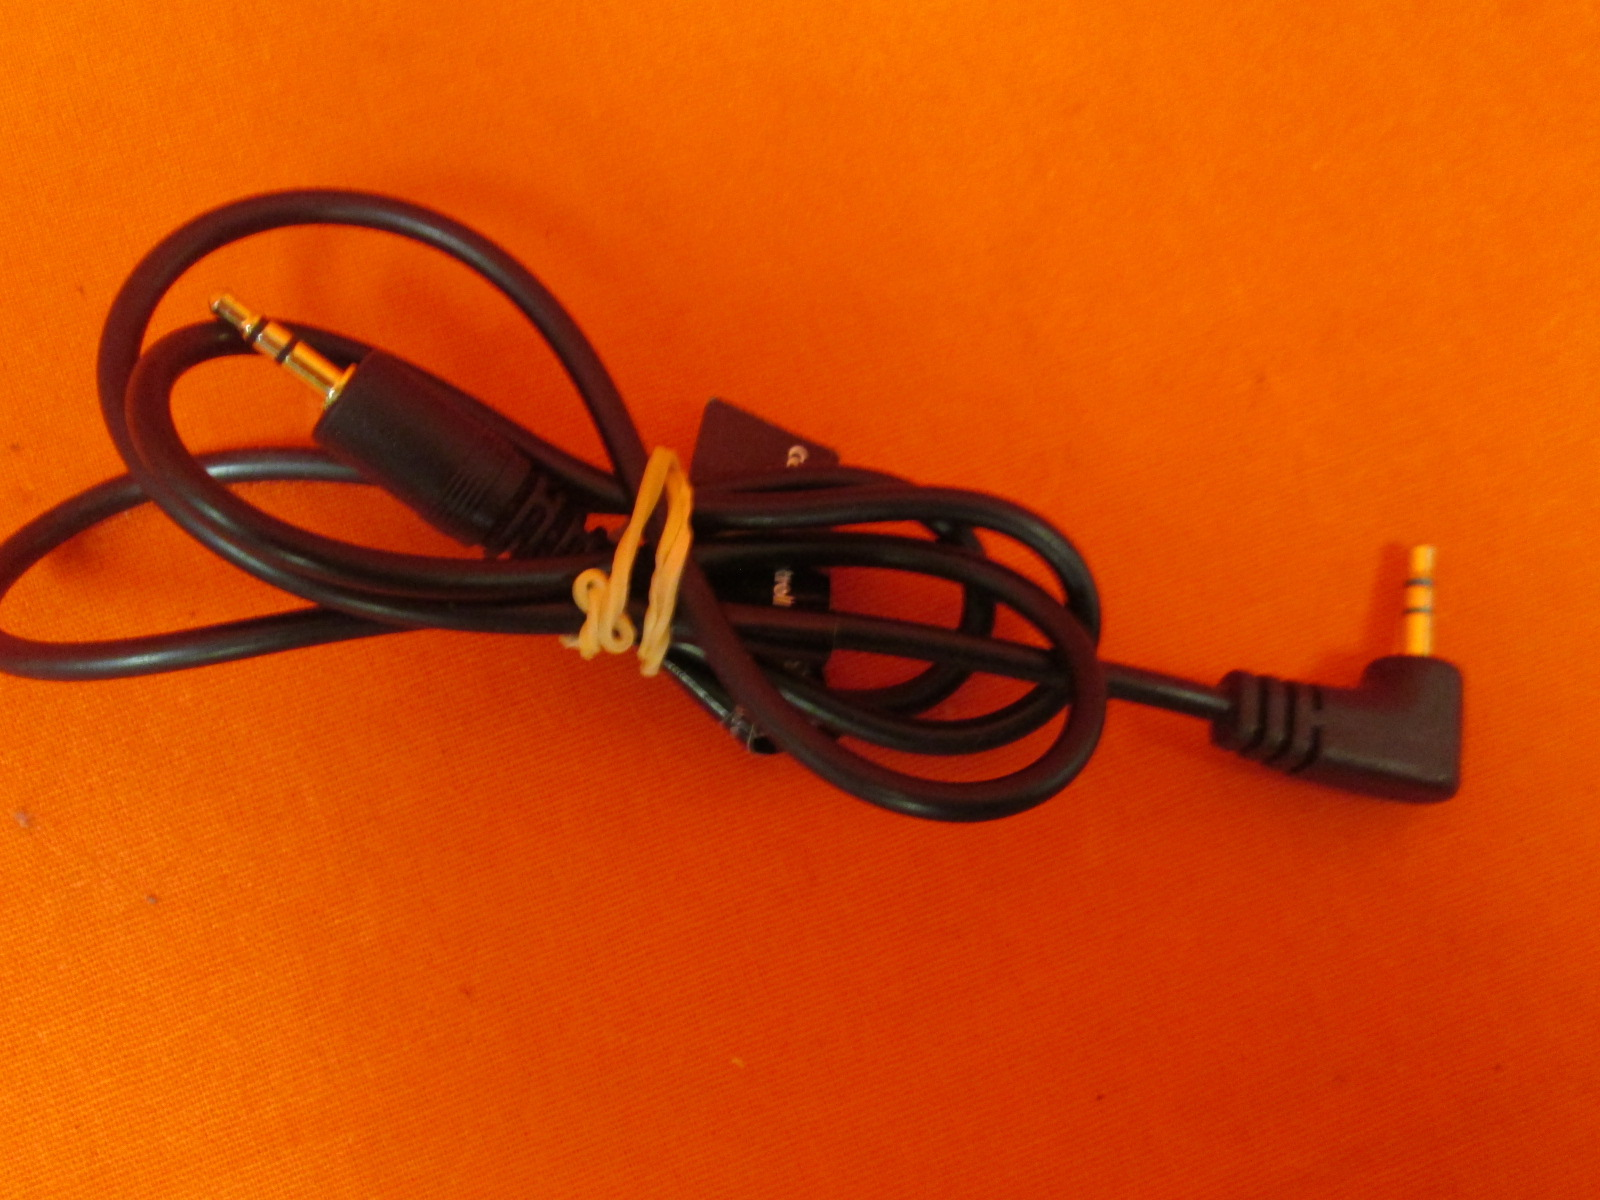 Turtle Beach Gaming Headset Cable 2.5MM Gold Plated Jacks